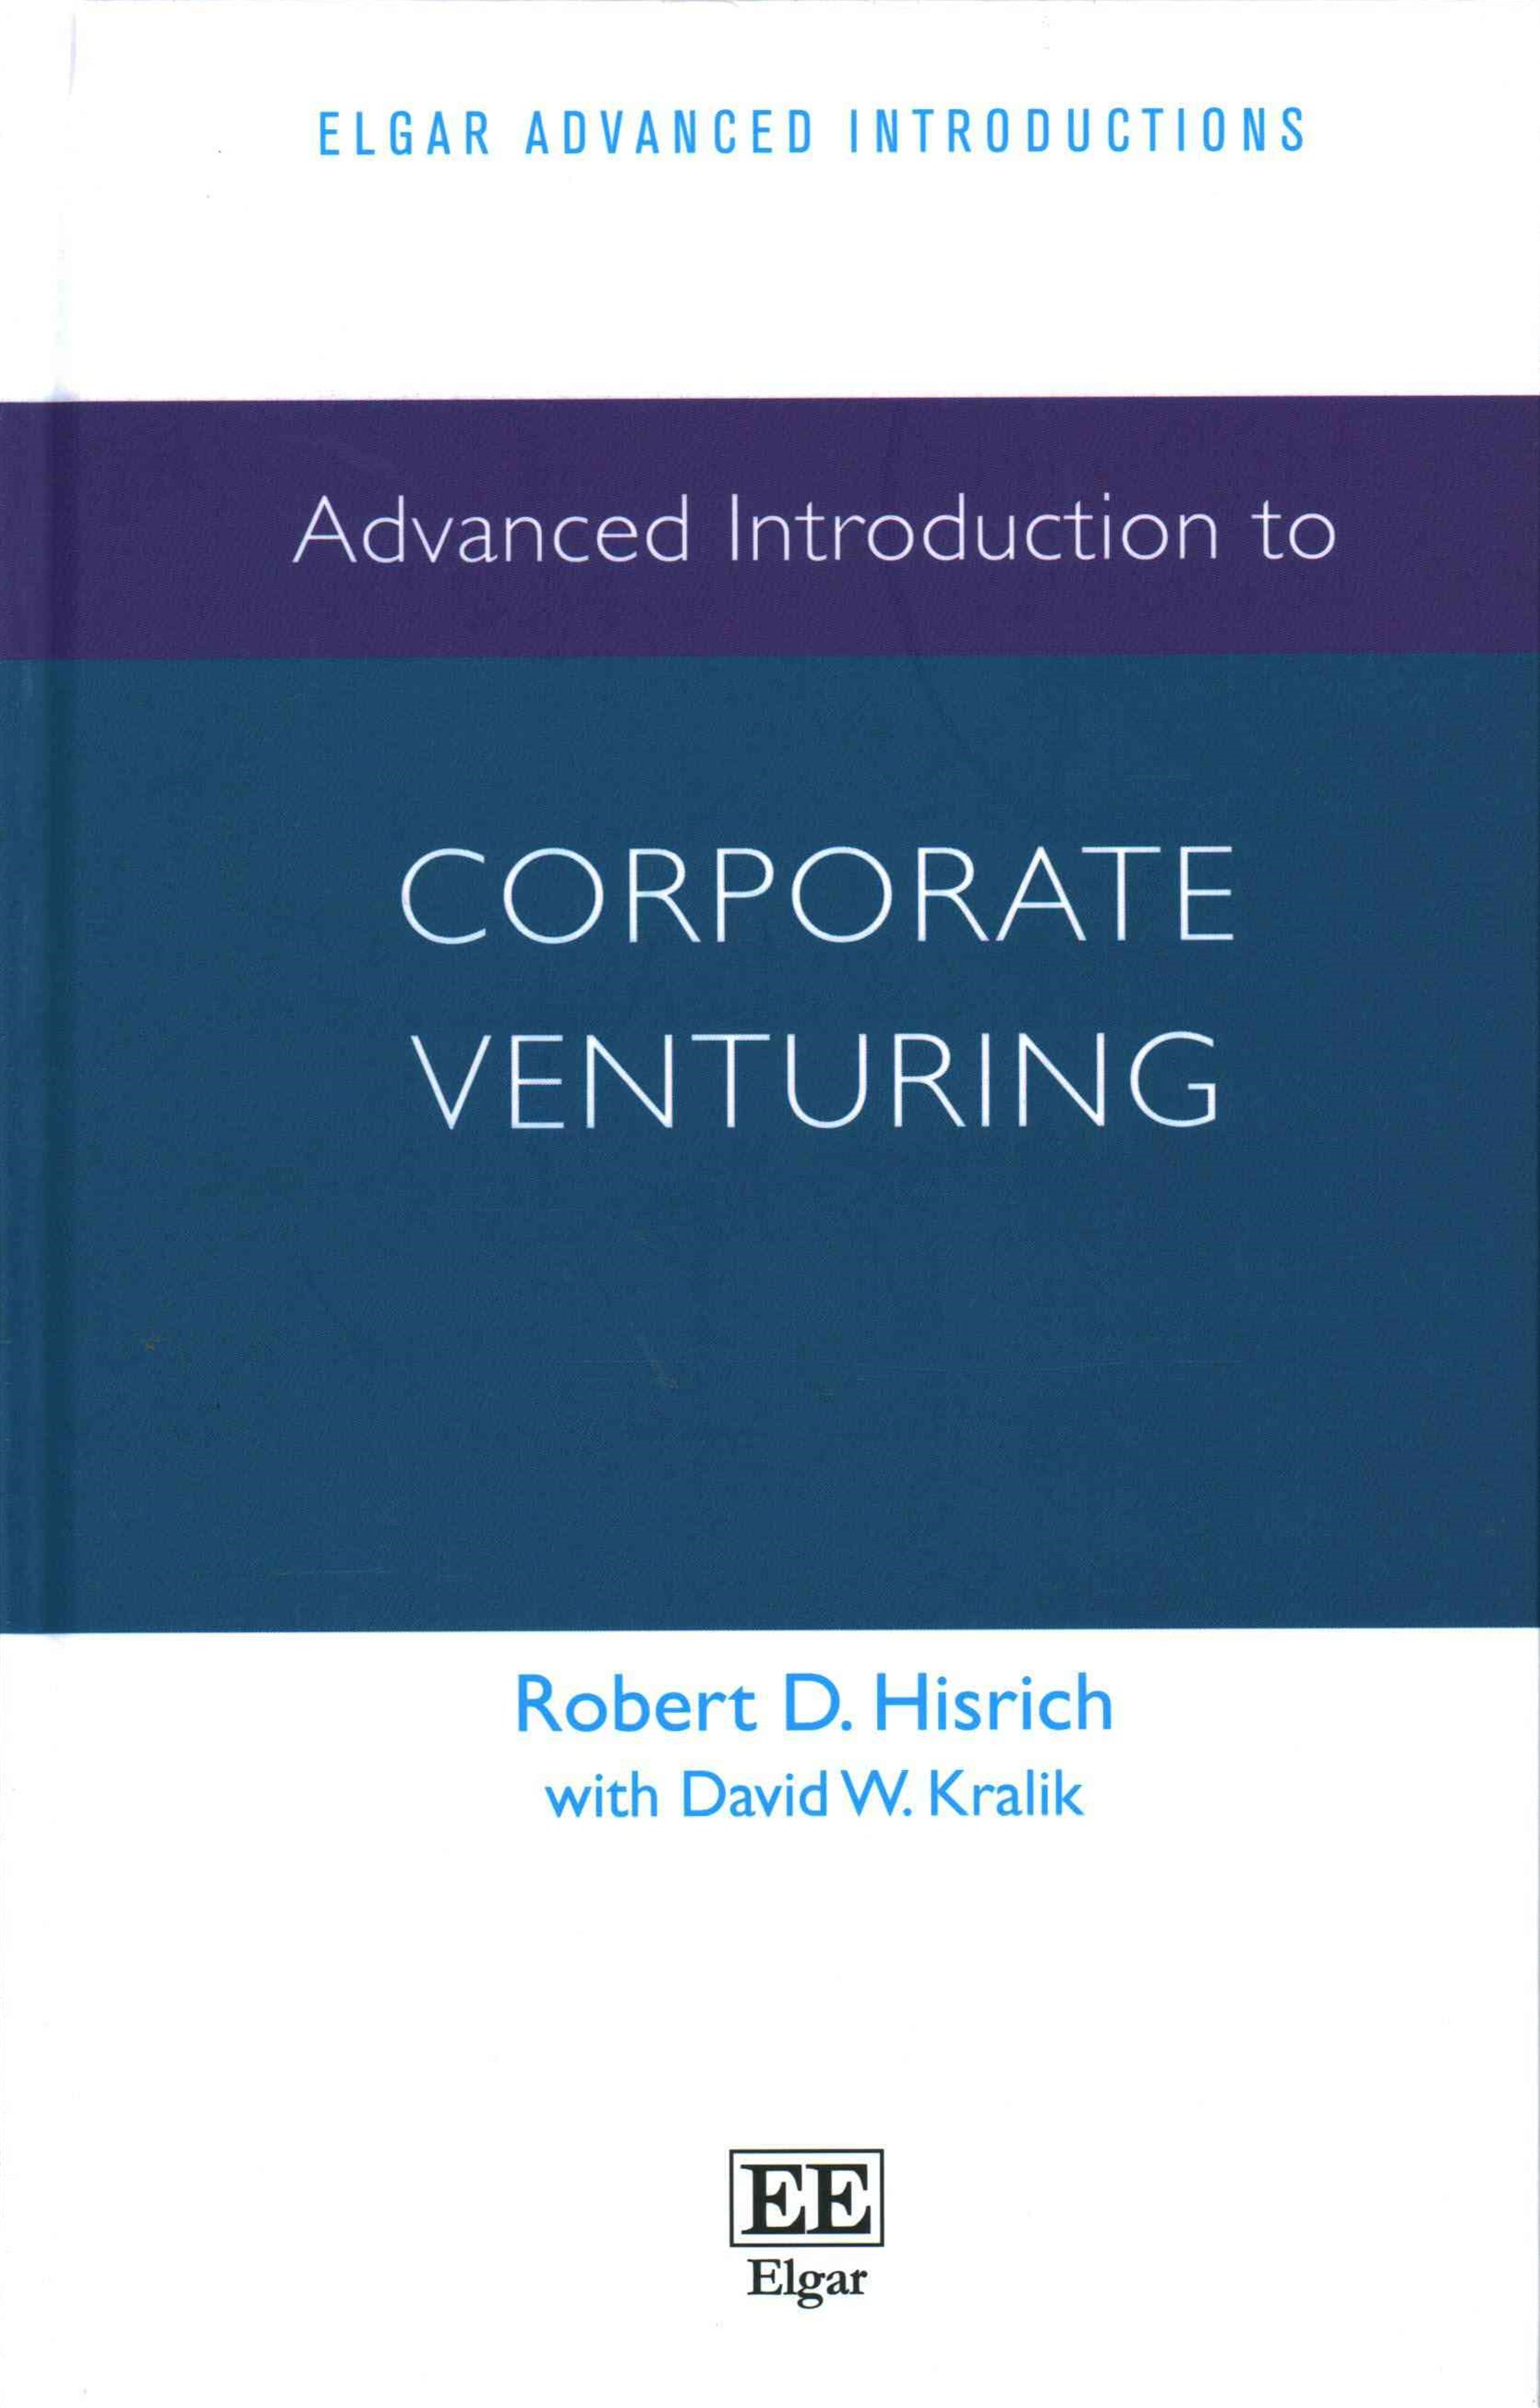 Advanced Introduction to Corporate Entrepreneurship